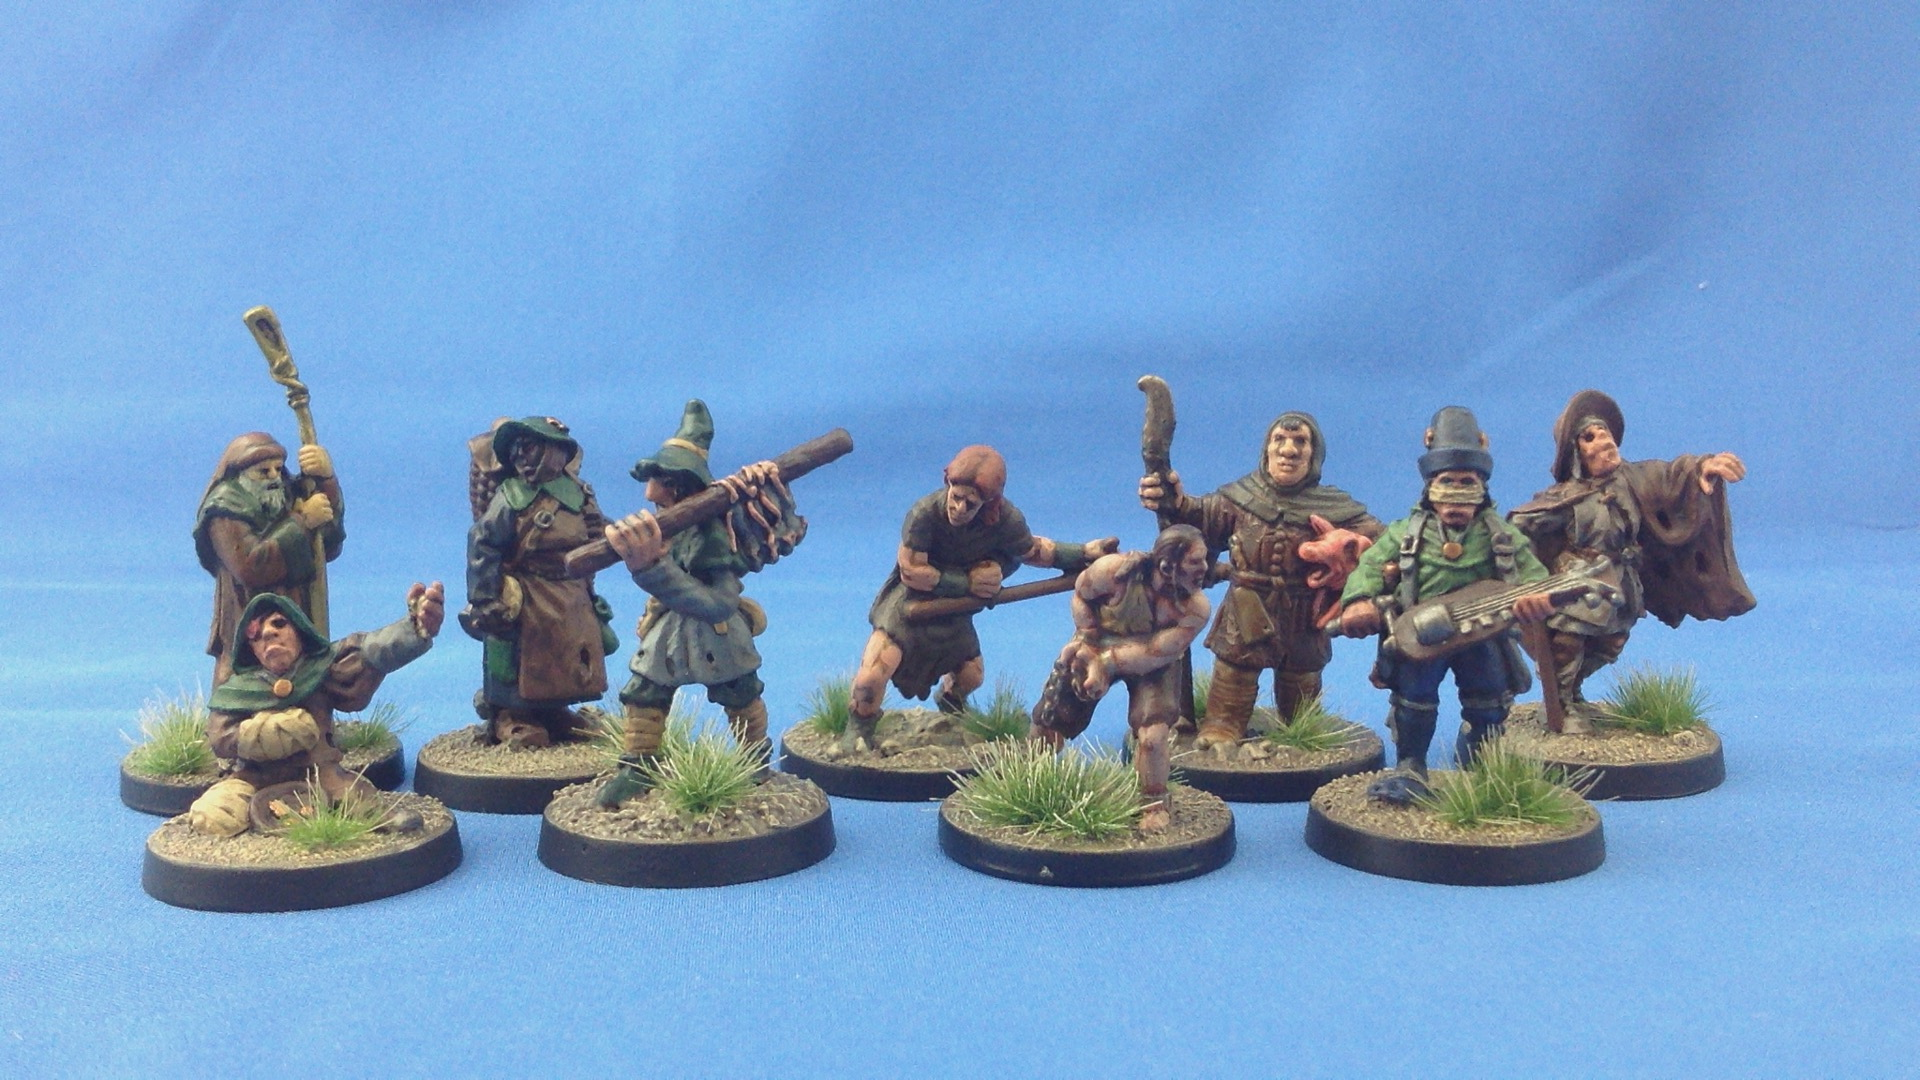 Civilians from WotC, Lead Adventure, and Old Glory.